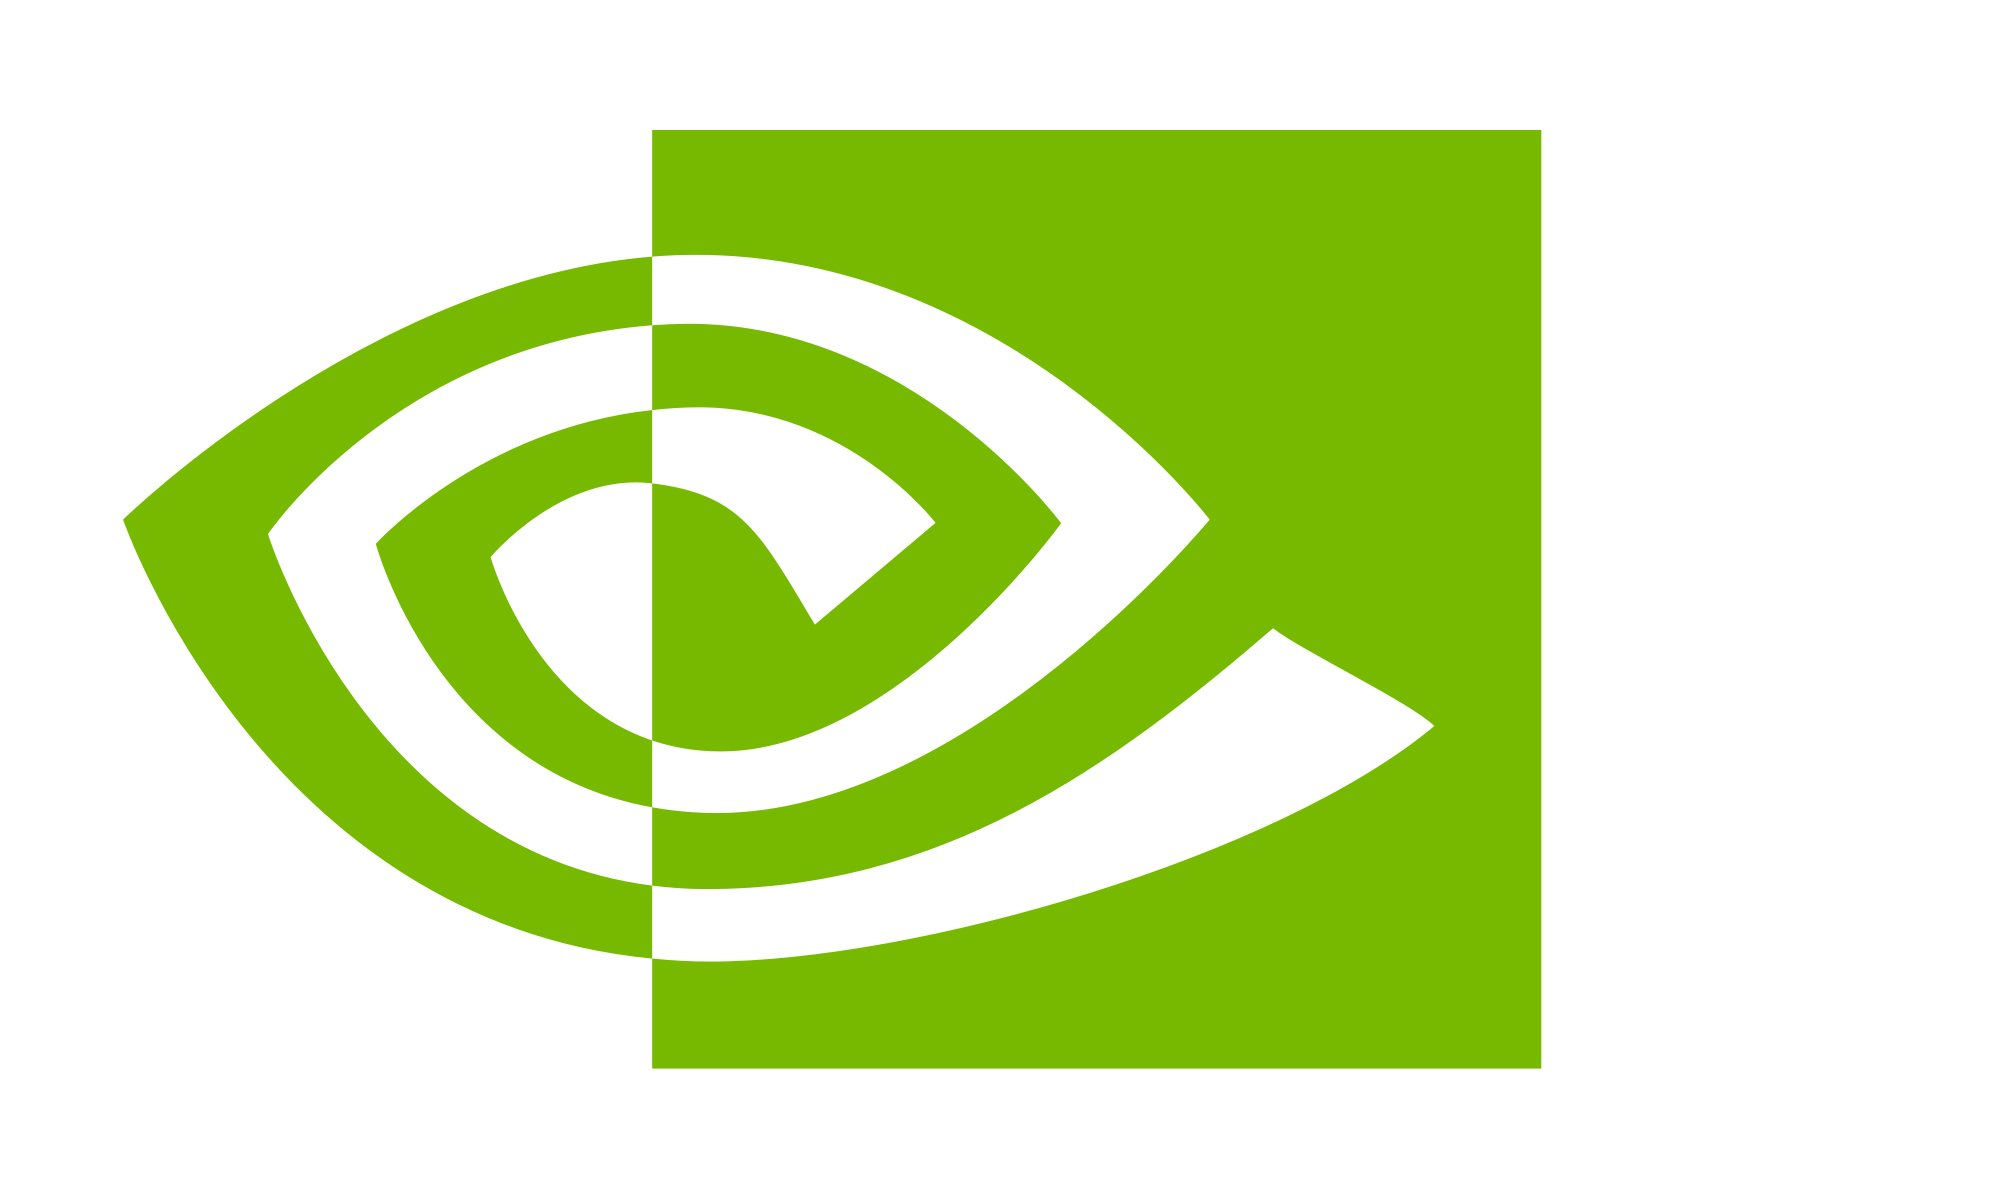 Nvidia Logo Nvidia Symbol Meaning History And Evolution